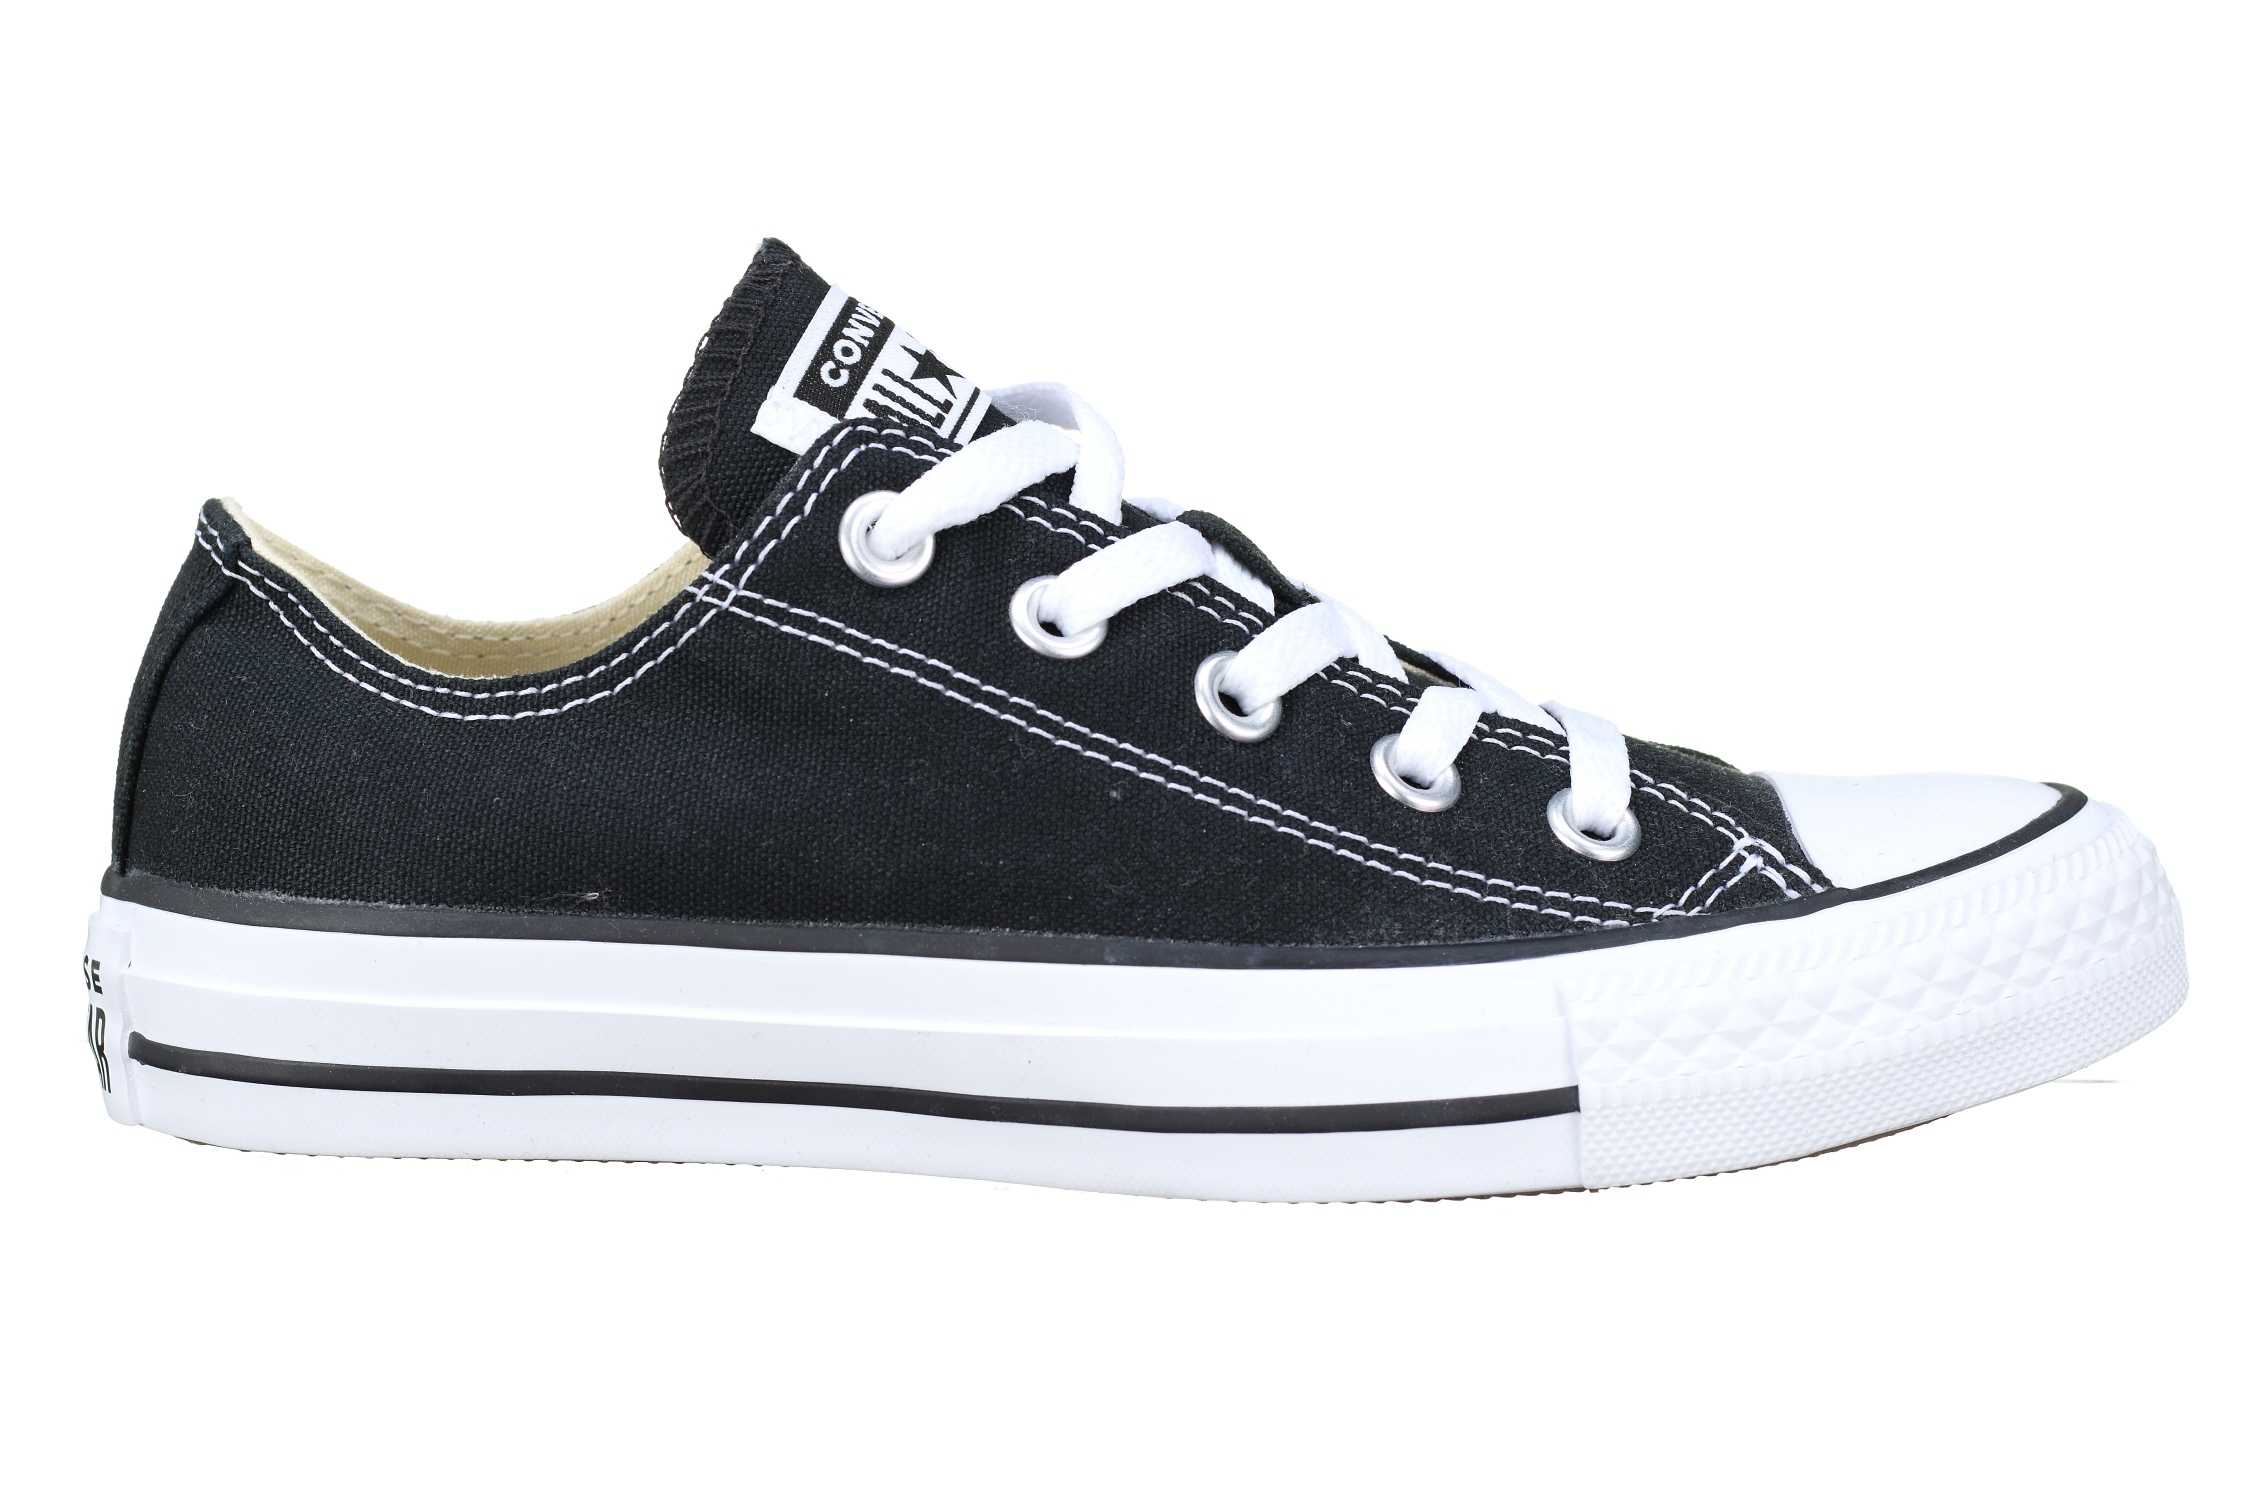 http://www.leadermode.com/181405/converse-yths-all-star-ox-3j235c-black.jpg